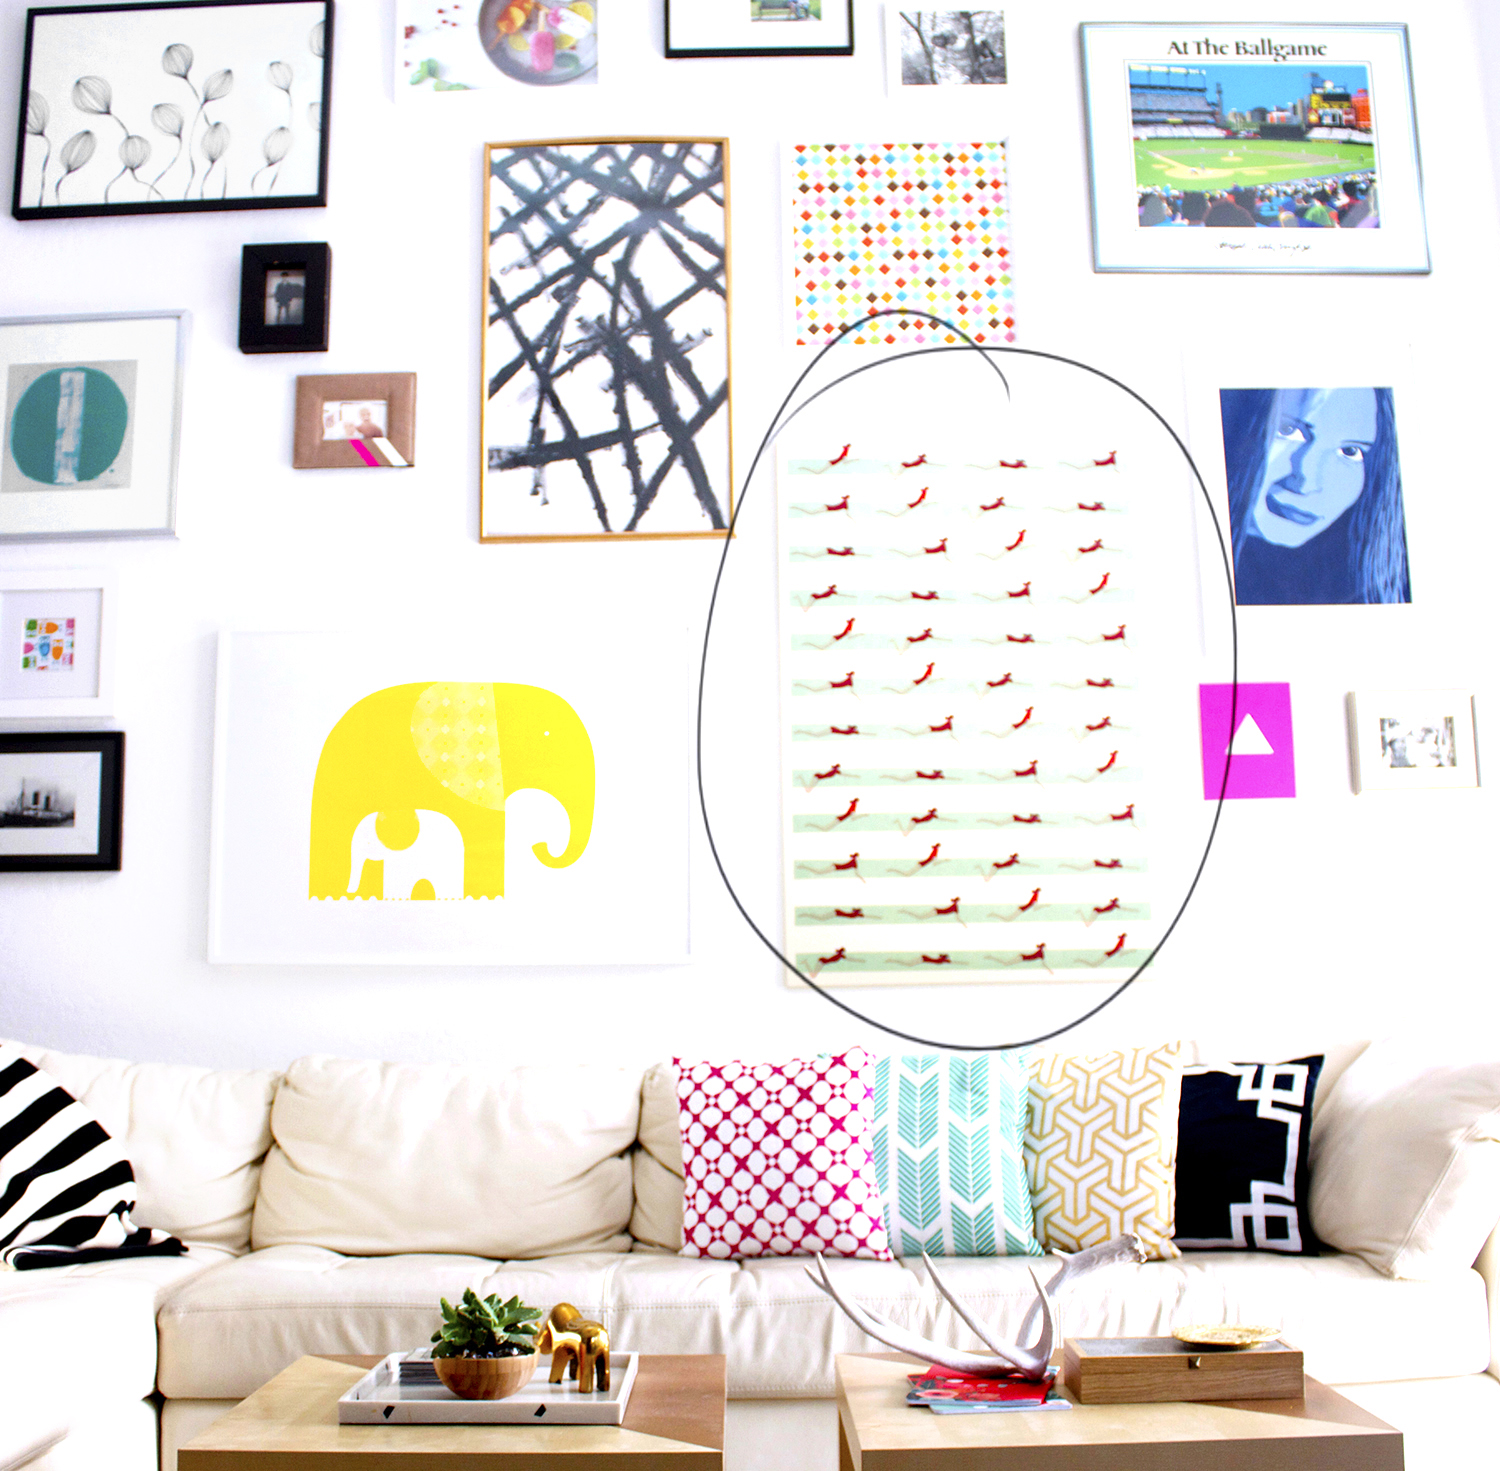 How To Do A Gallery Wall